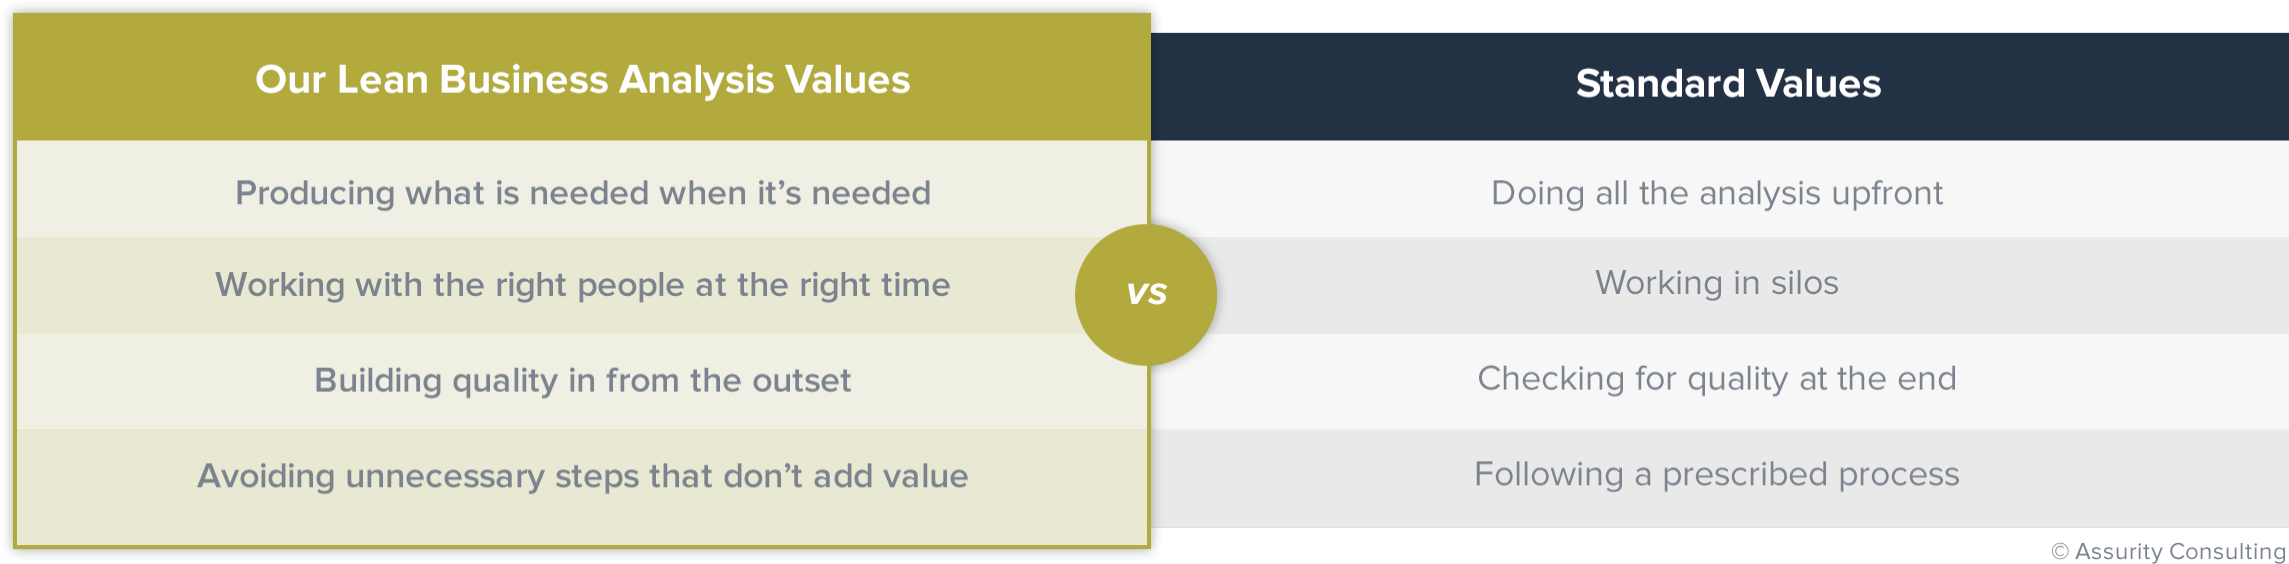 Table comparing lean business analysis values with standard values